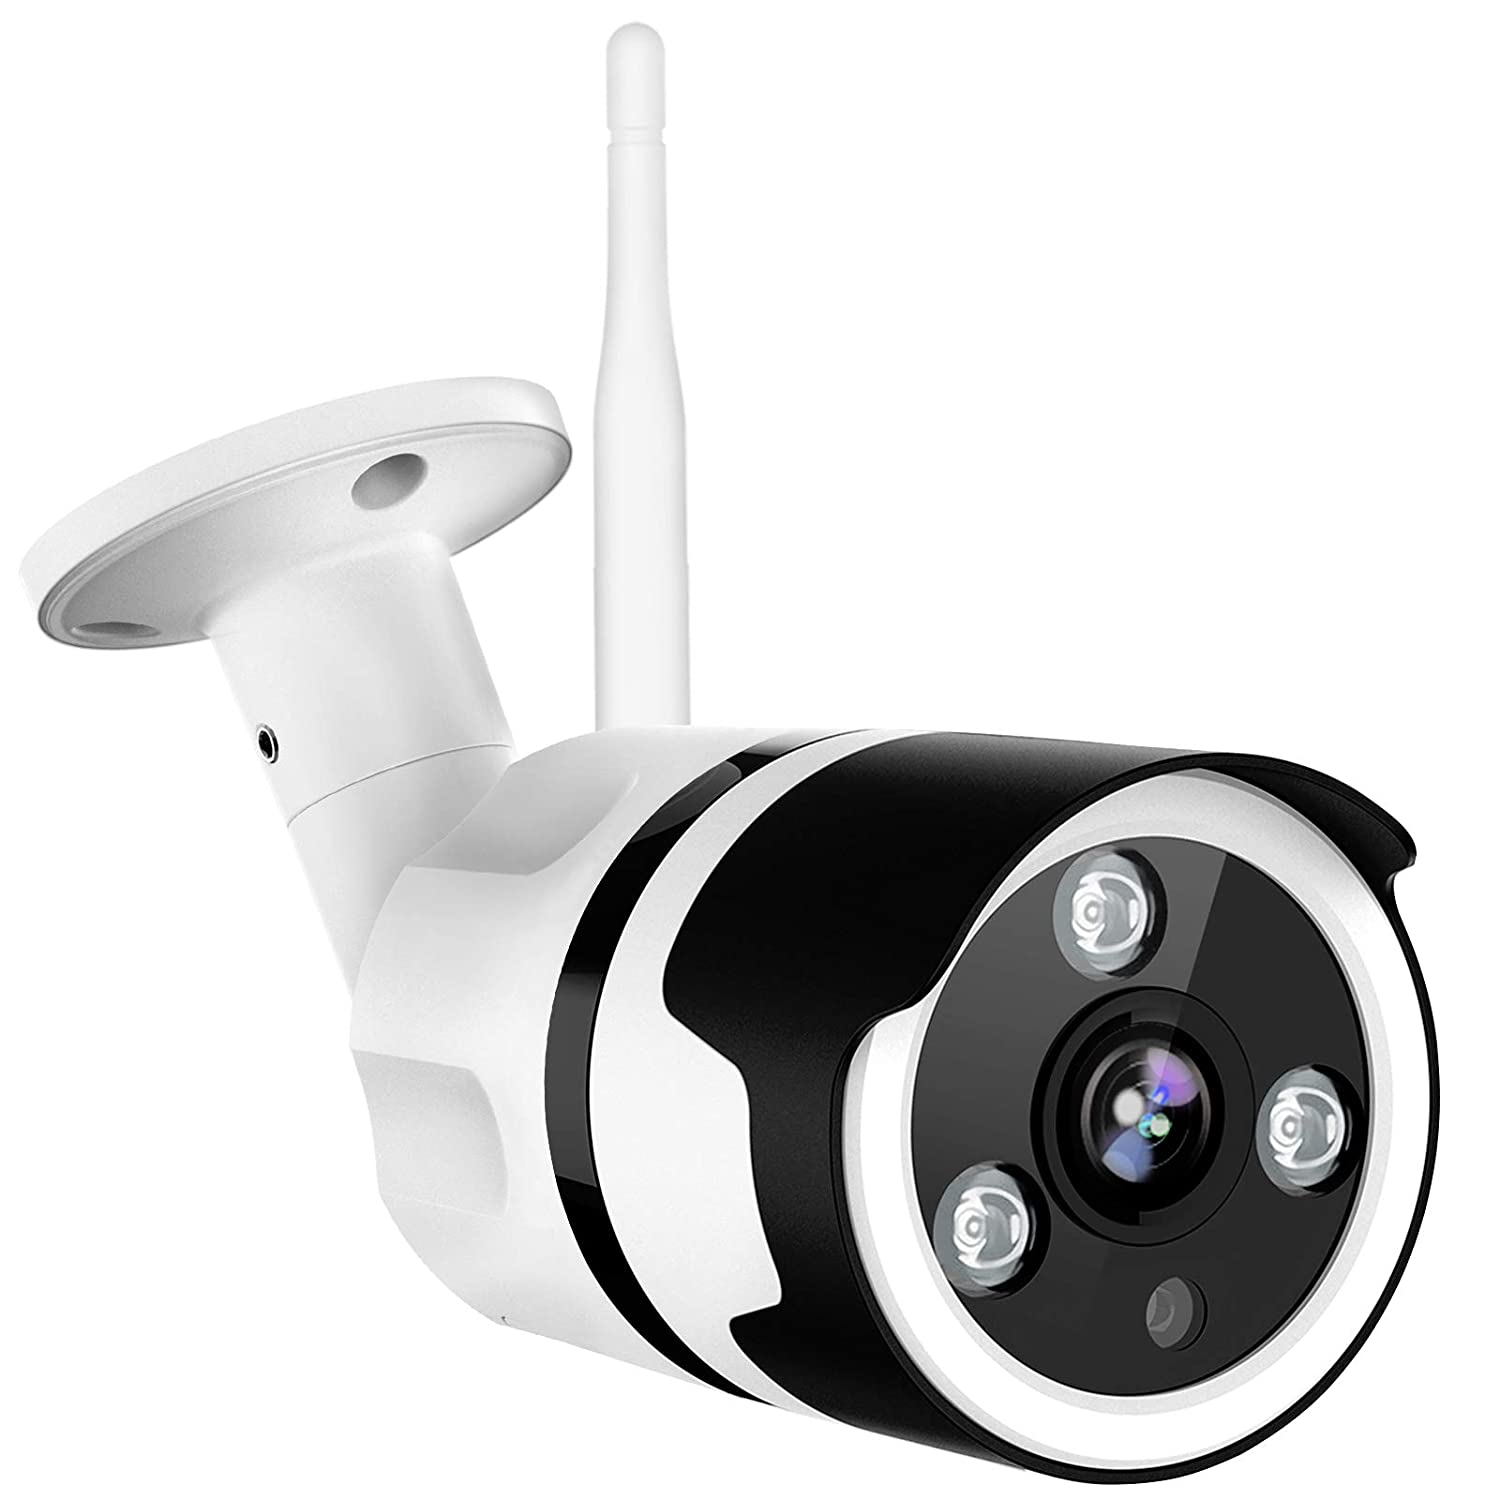 Outdoor Security Camera, Netvue 1080P Wifi Bullet Surveillance Camera Two-Way Audio, IP66 Waterproof, FHD Night Vision, Motion Detection, Home Security